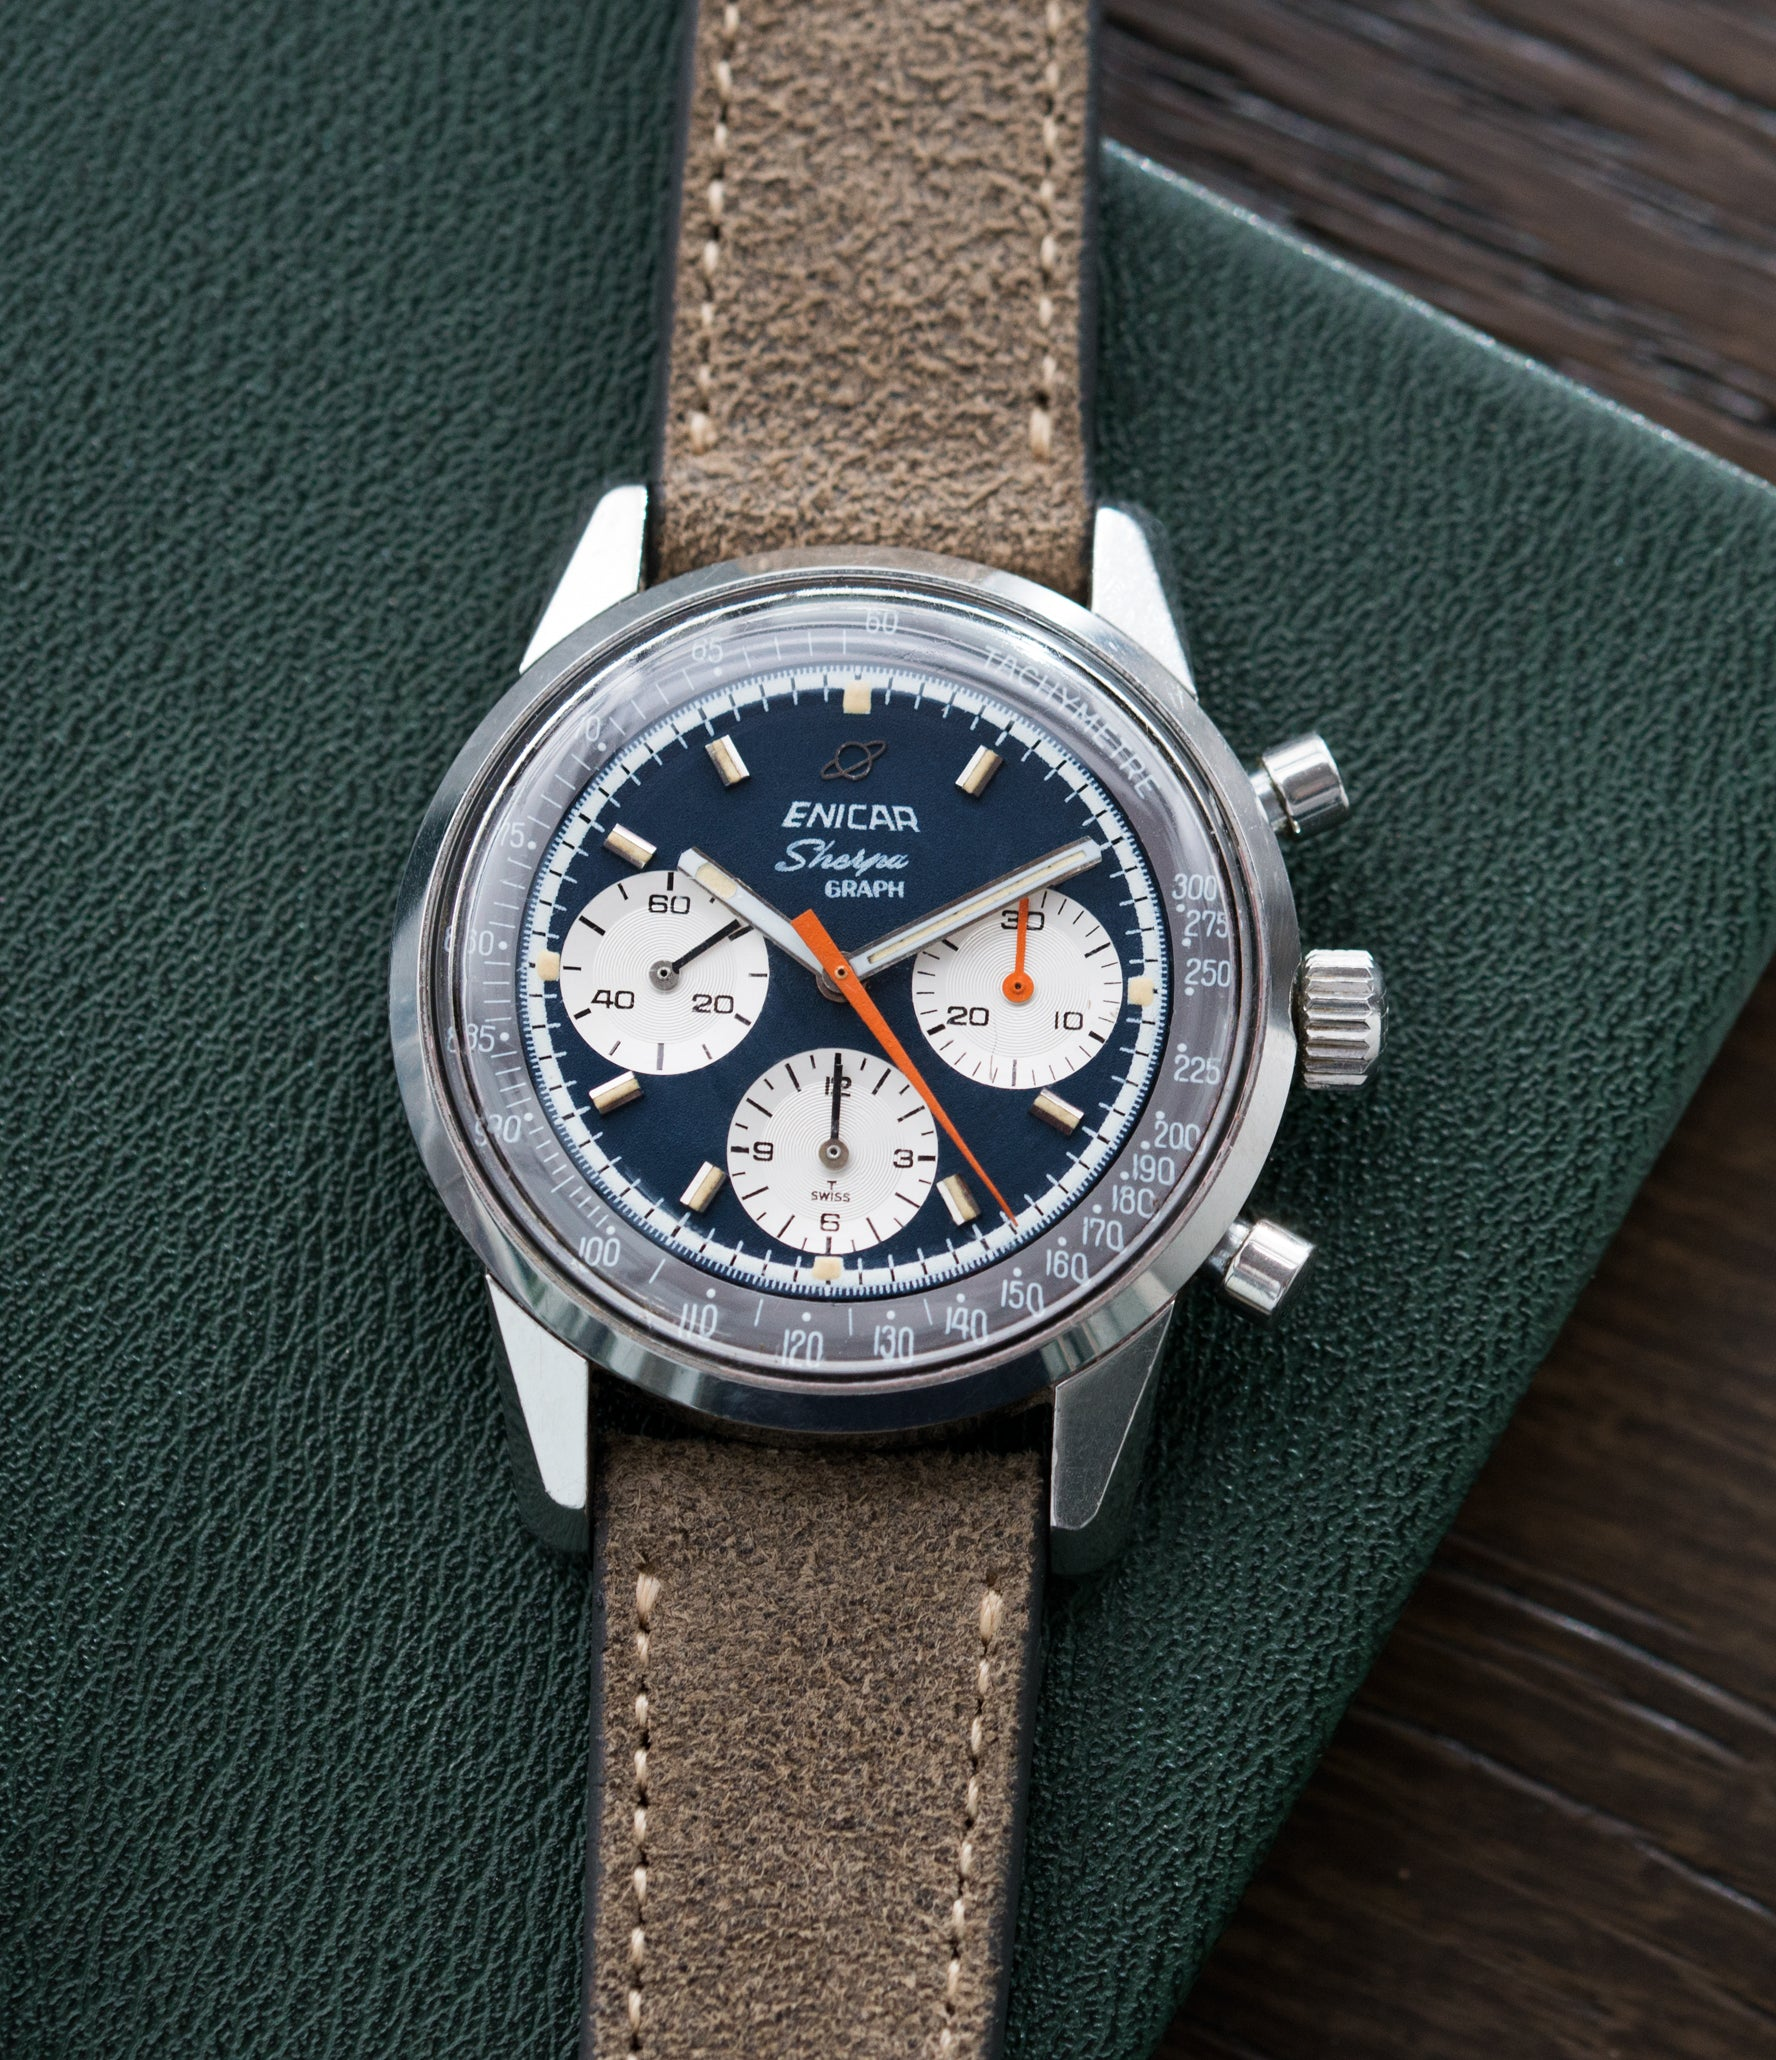 kickstarter vintage proposition value baltic hms inspired chronograph style watches